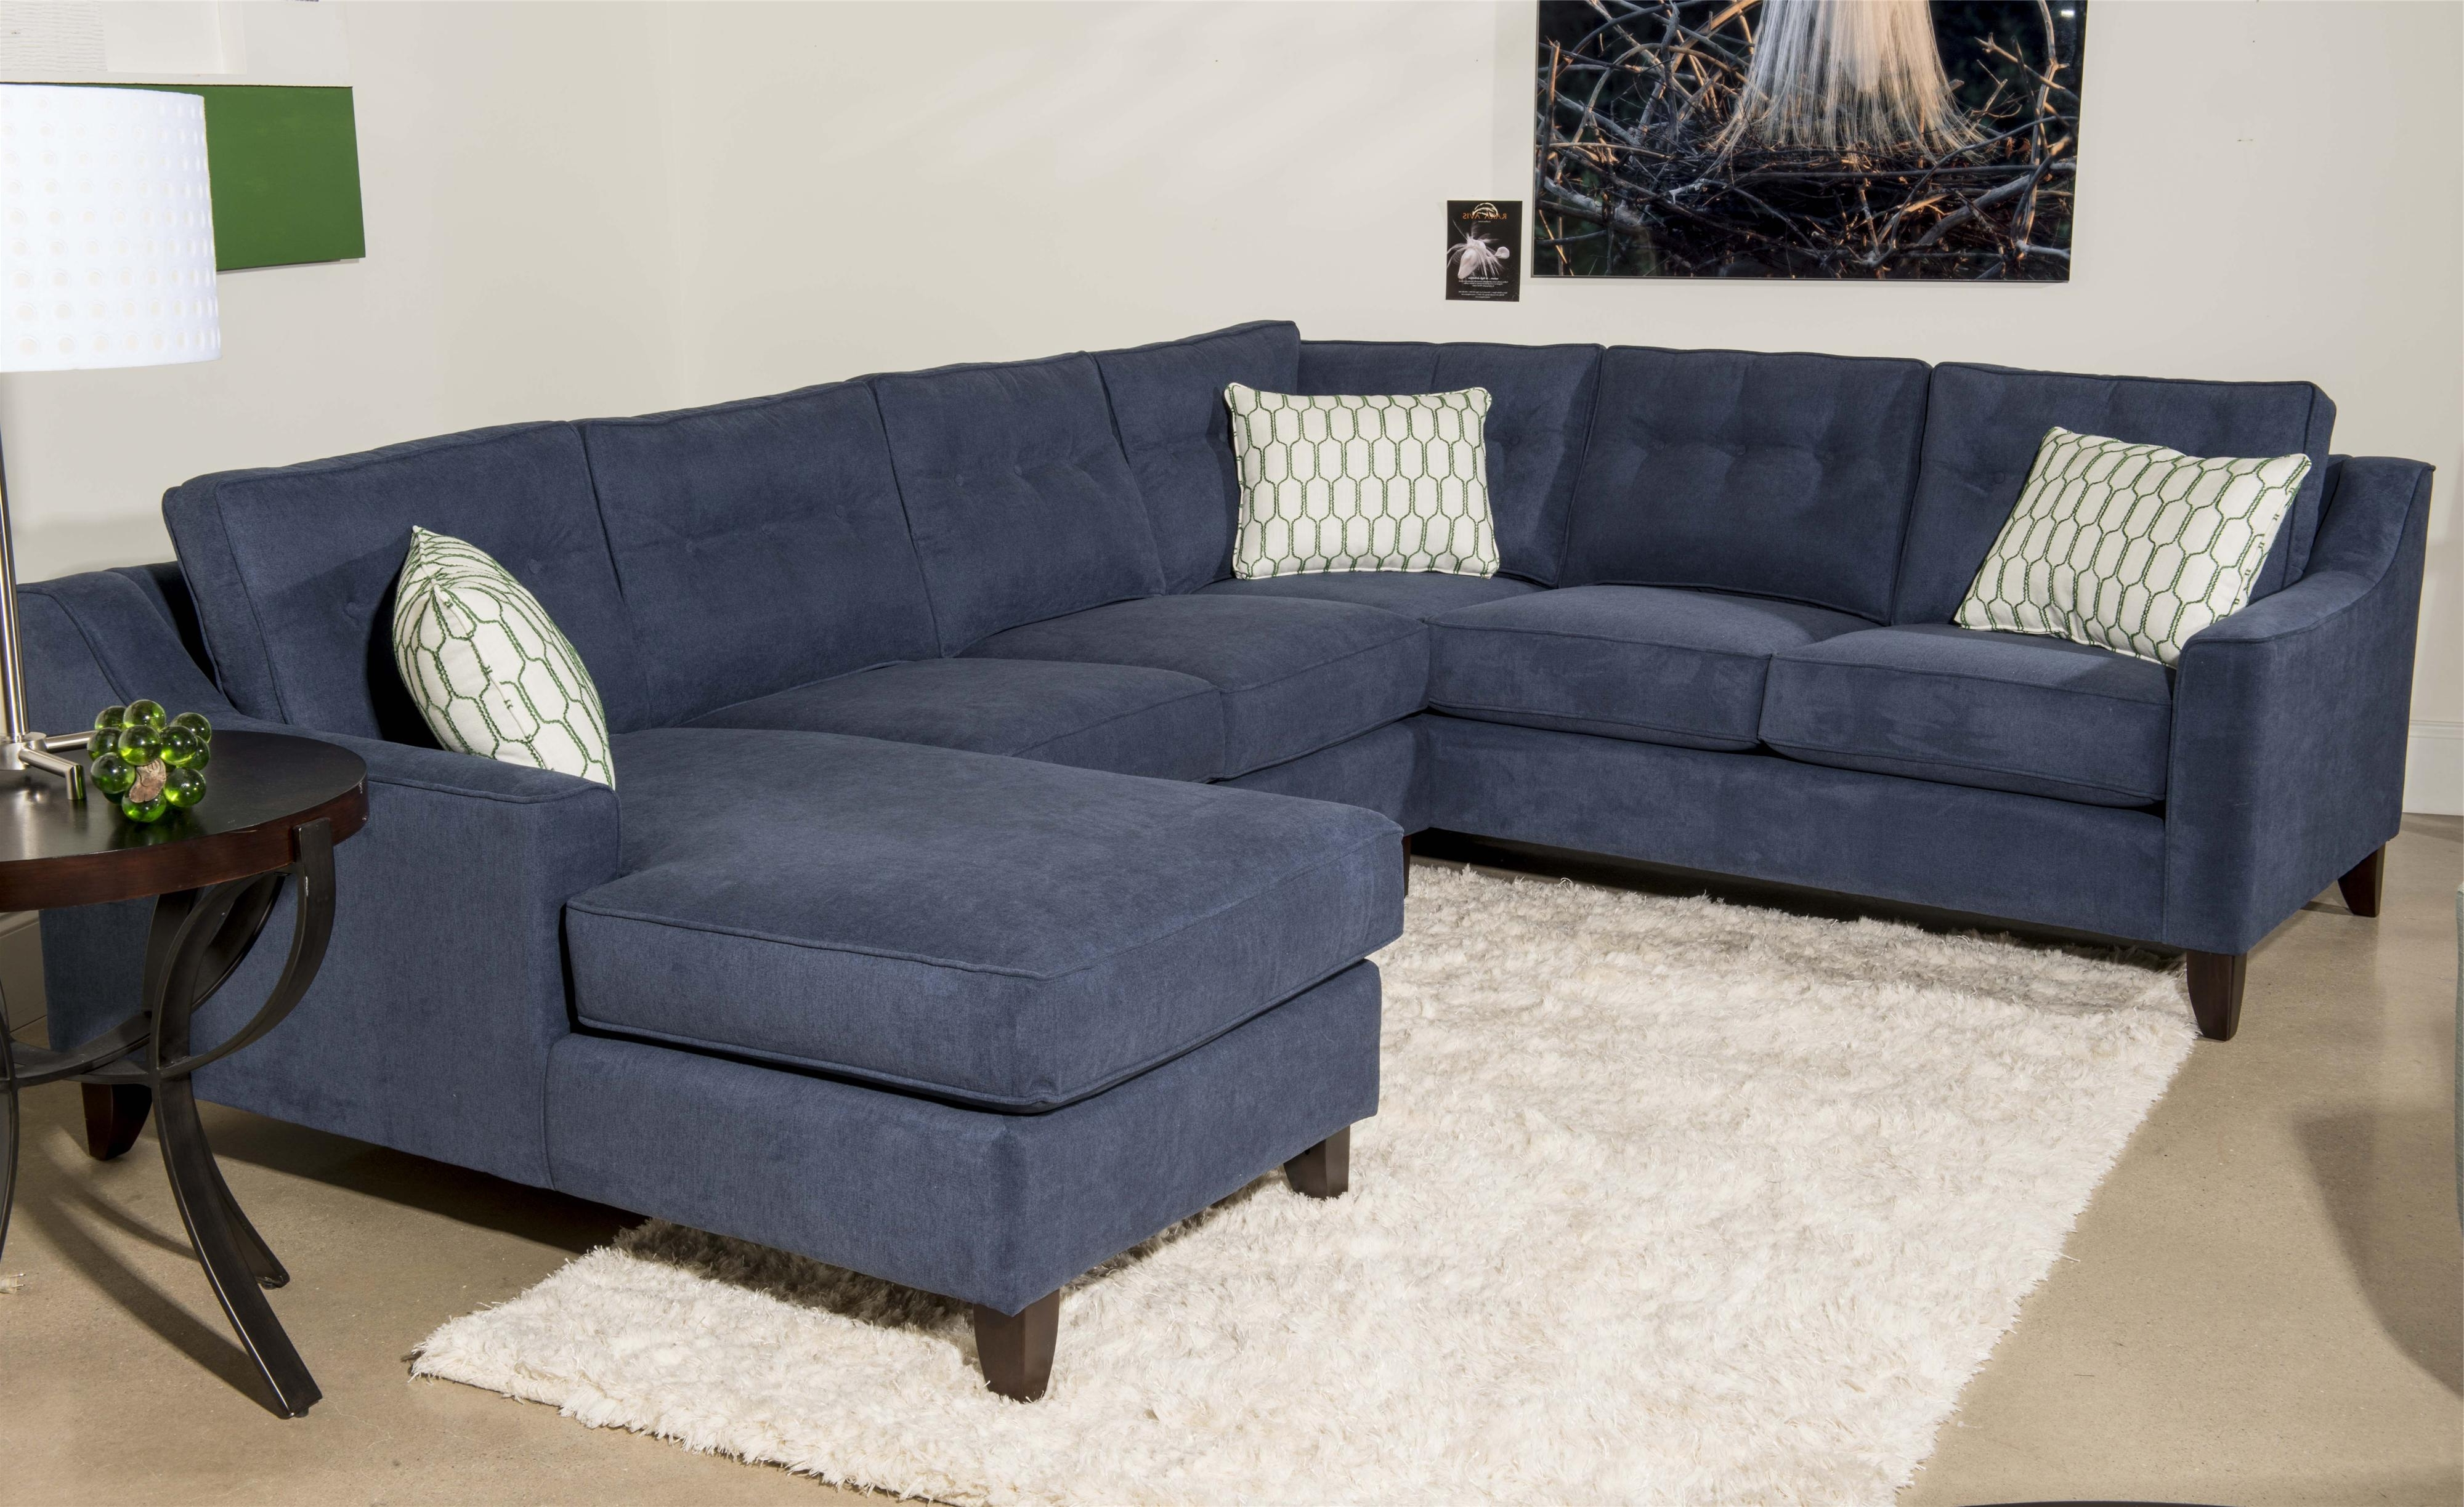 Klaussner Audrina Contemporary 3 Piece Sectional Sofa With Chaise Within 2018 Sectional Sofas With Chaise (View 4 of 15)